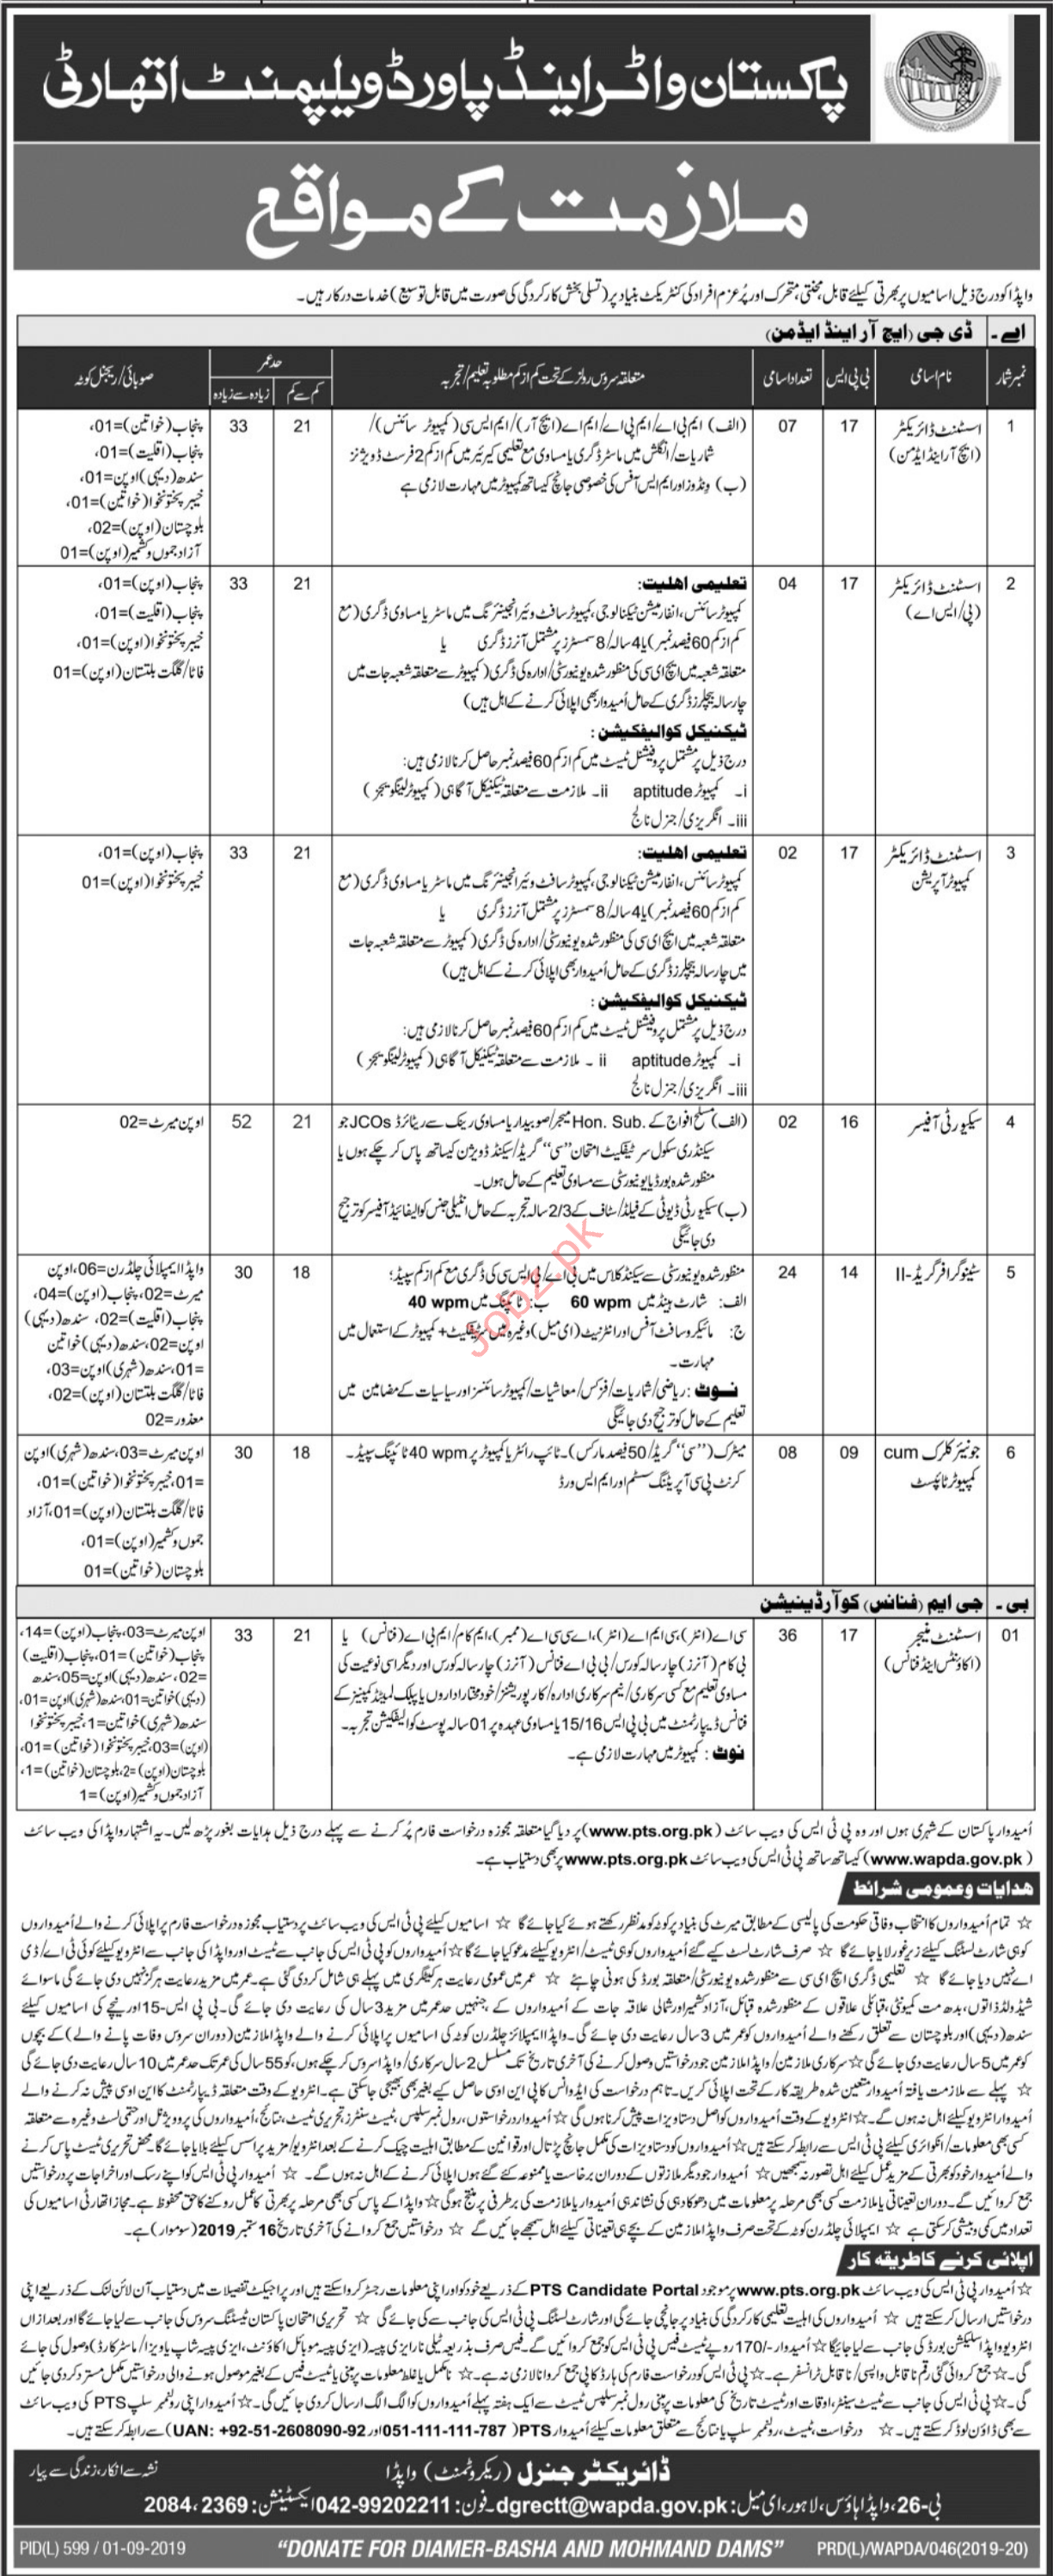 Pakistan Water and Power Development Authority Via PTS Jobs